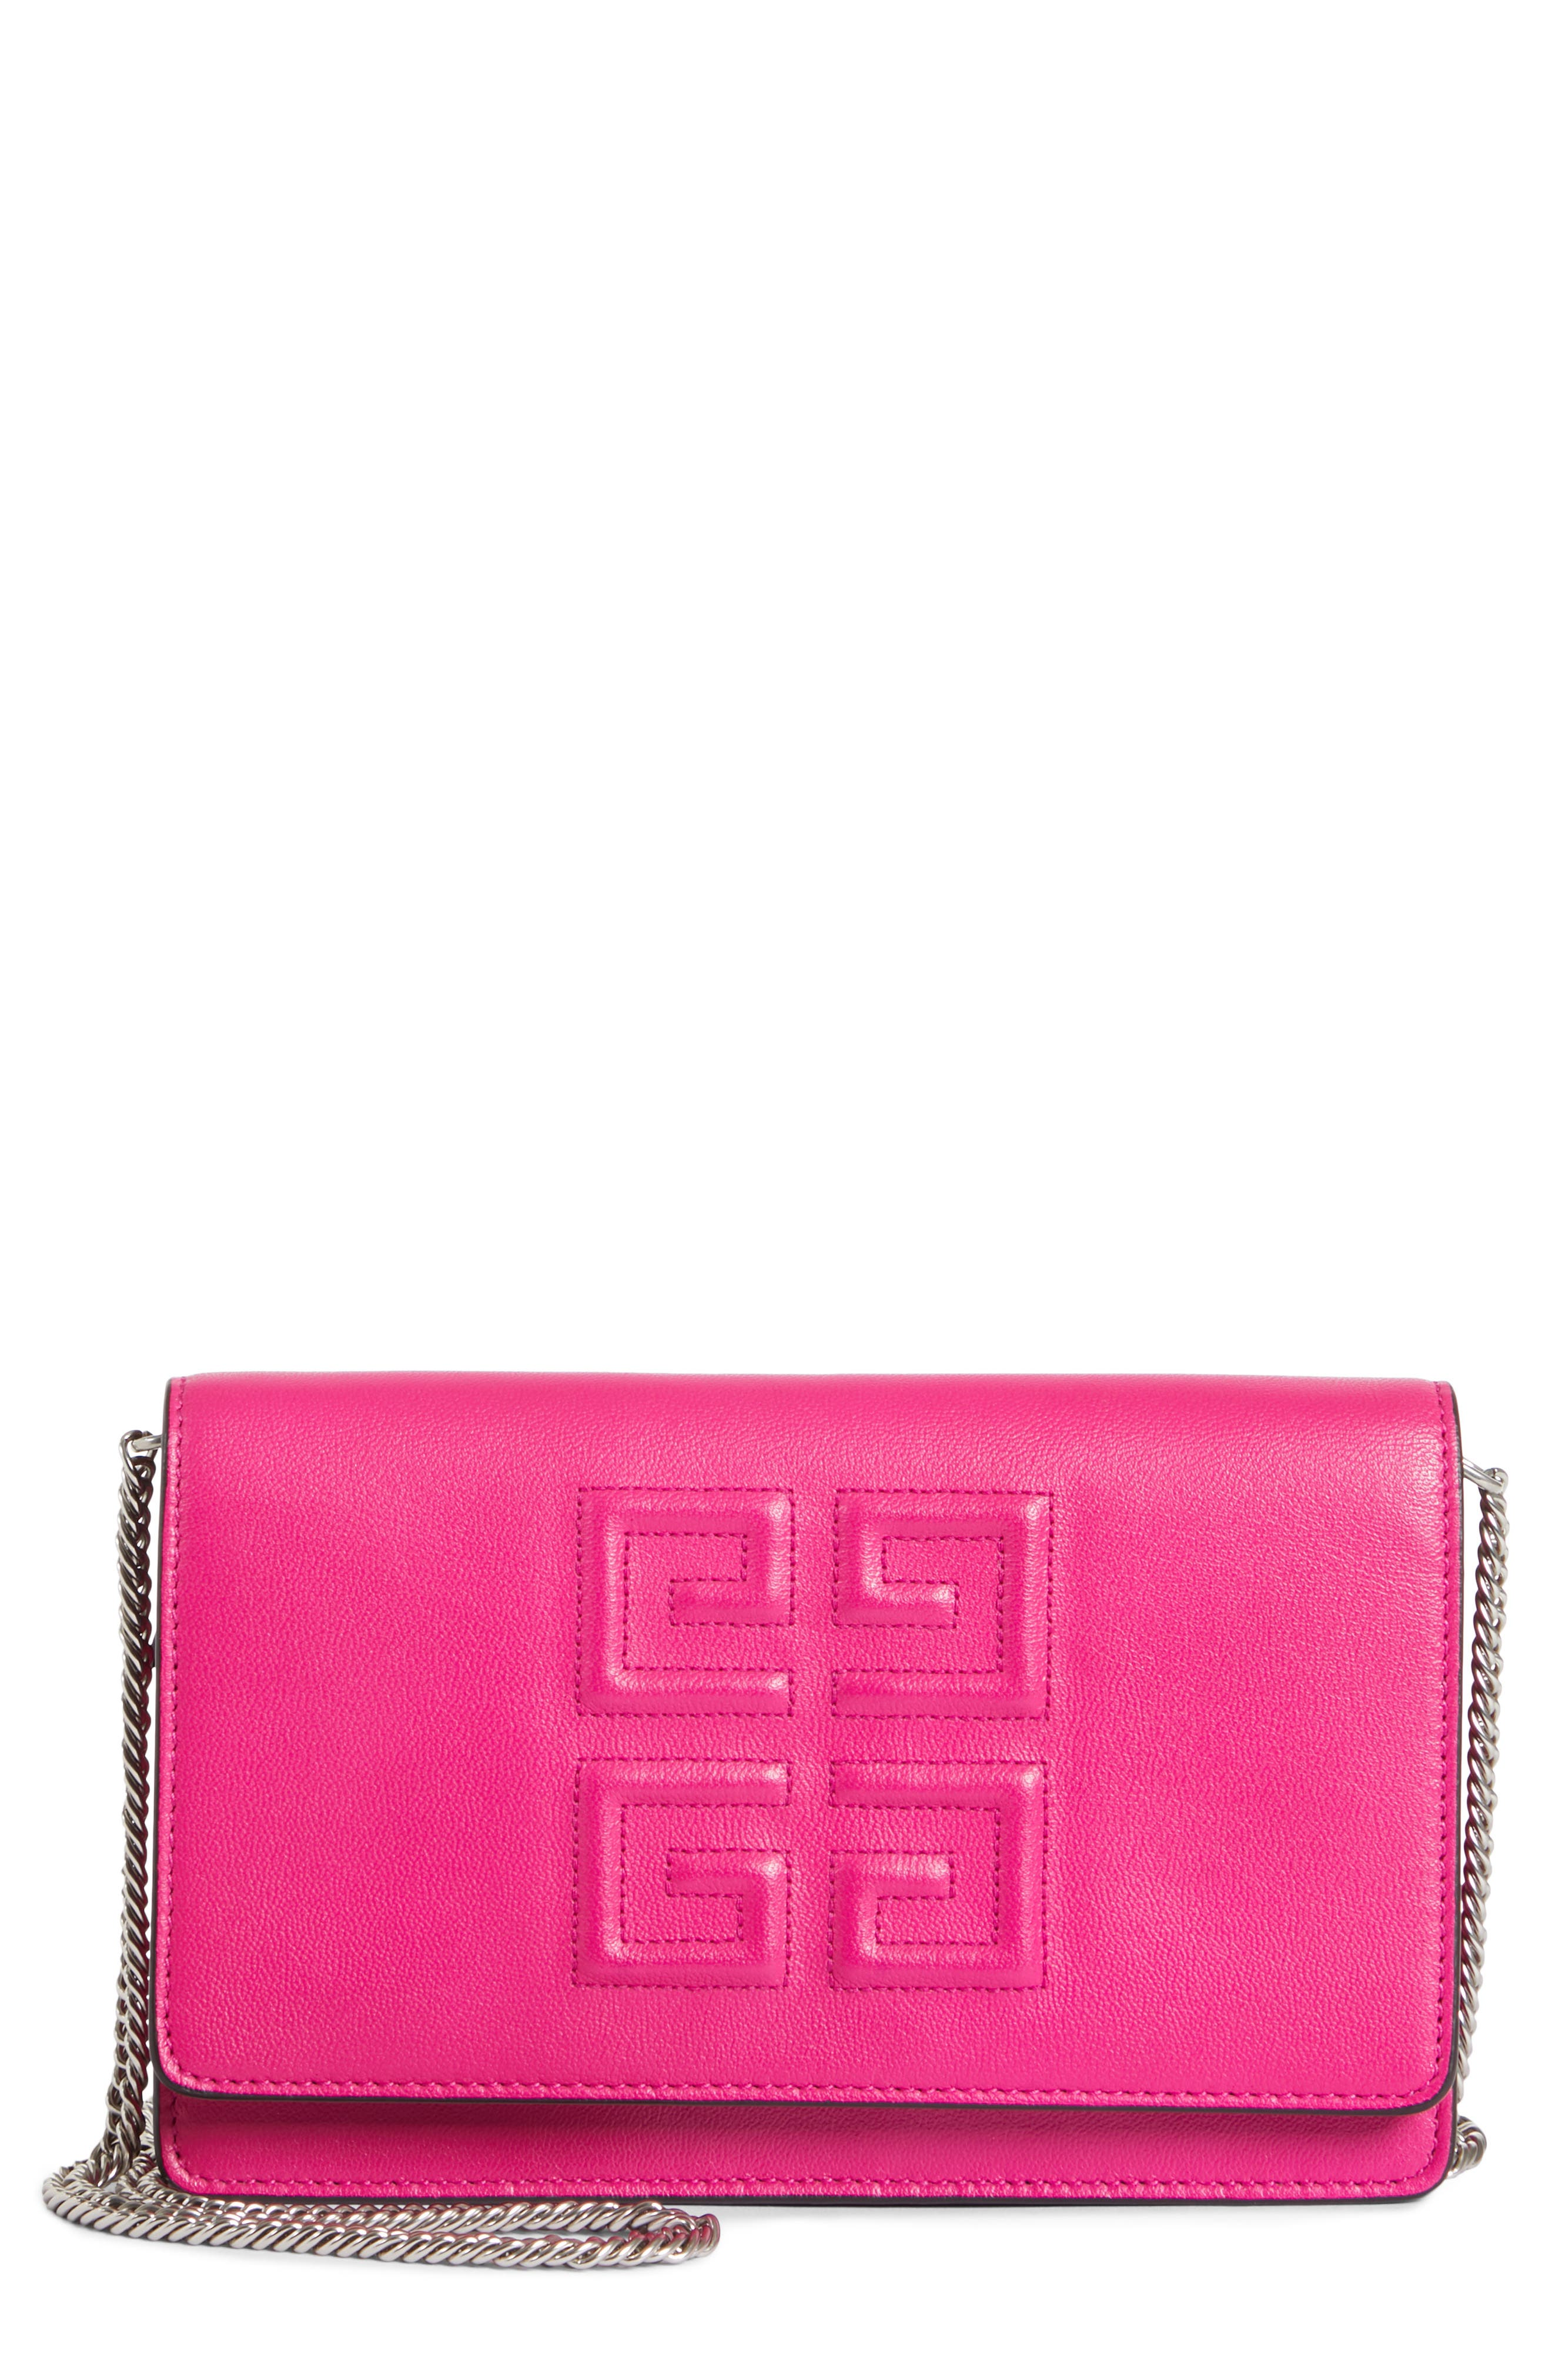 GIVENCHY Embossed Emblem Wallet on a Chain, Main, color, CYCLAMEN